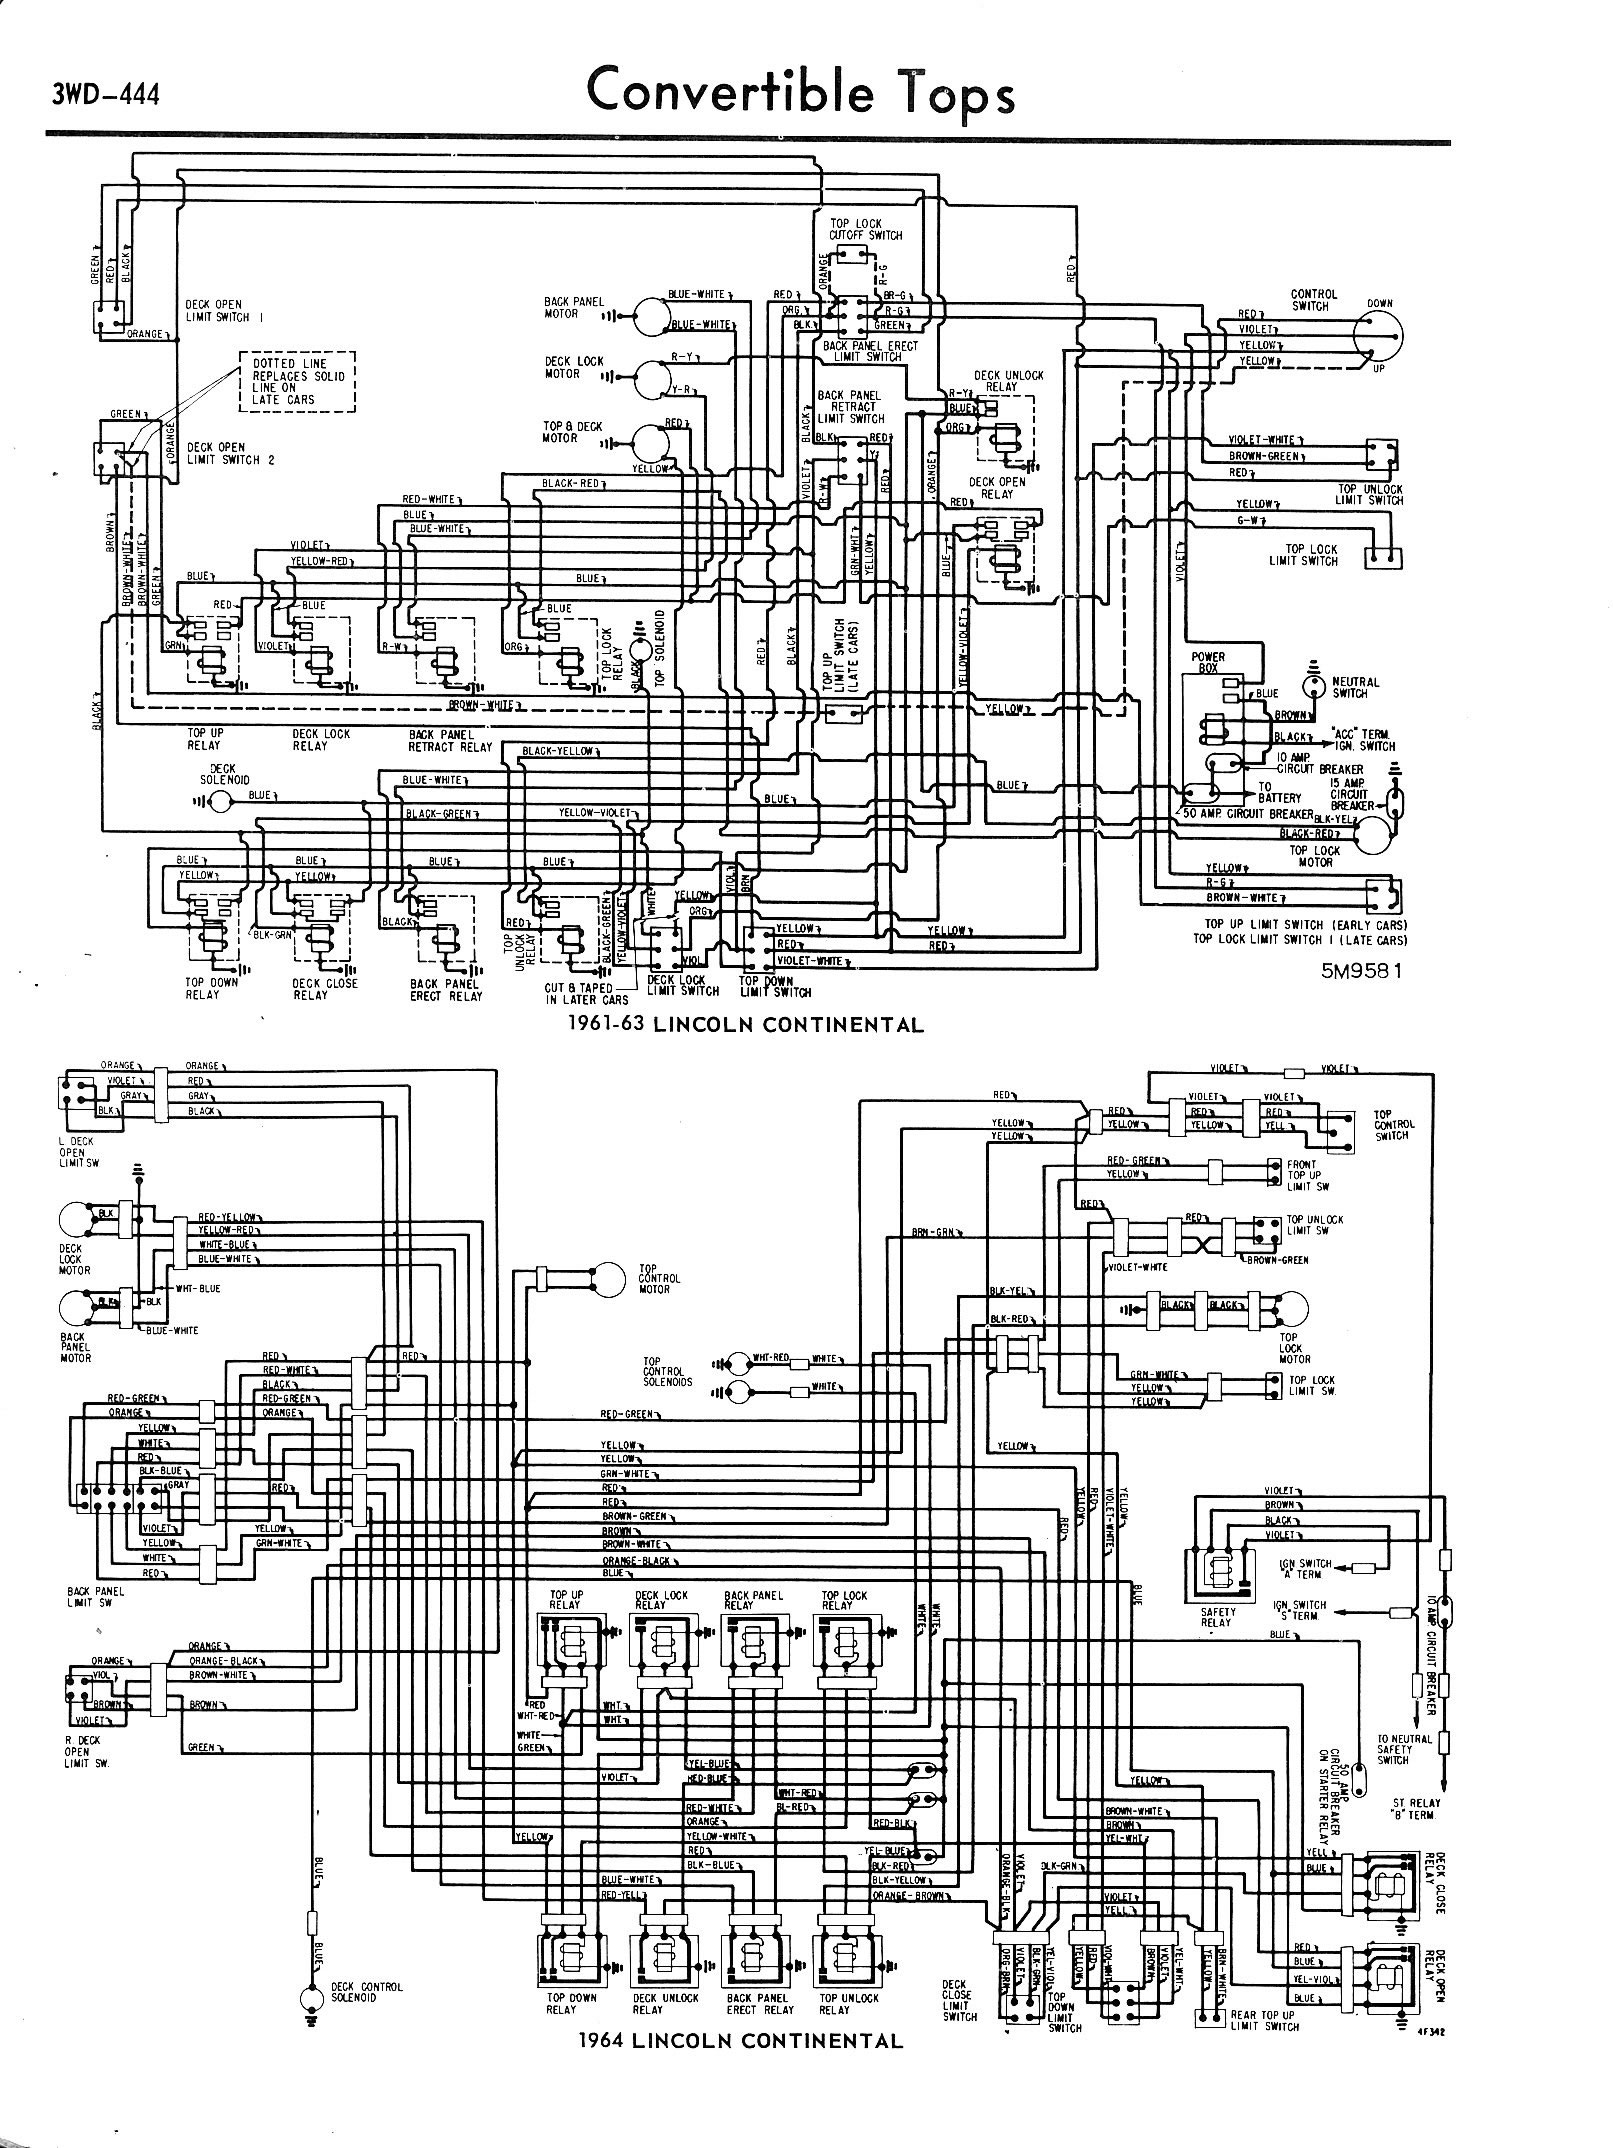 1975 ford duraspark wiring diagram for air conditioning unit diagrams